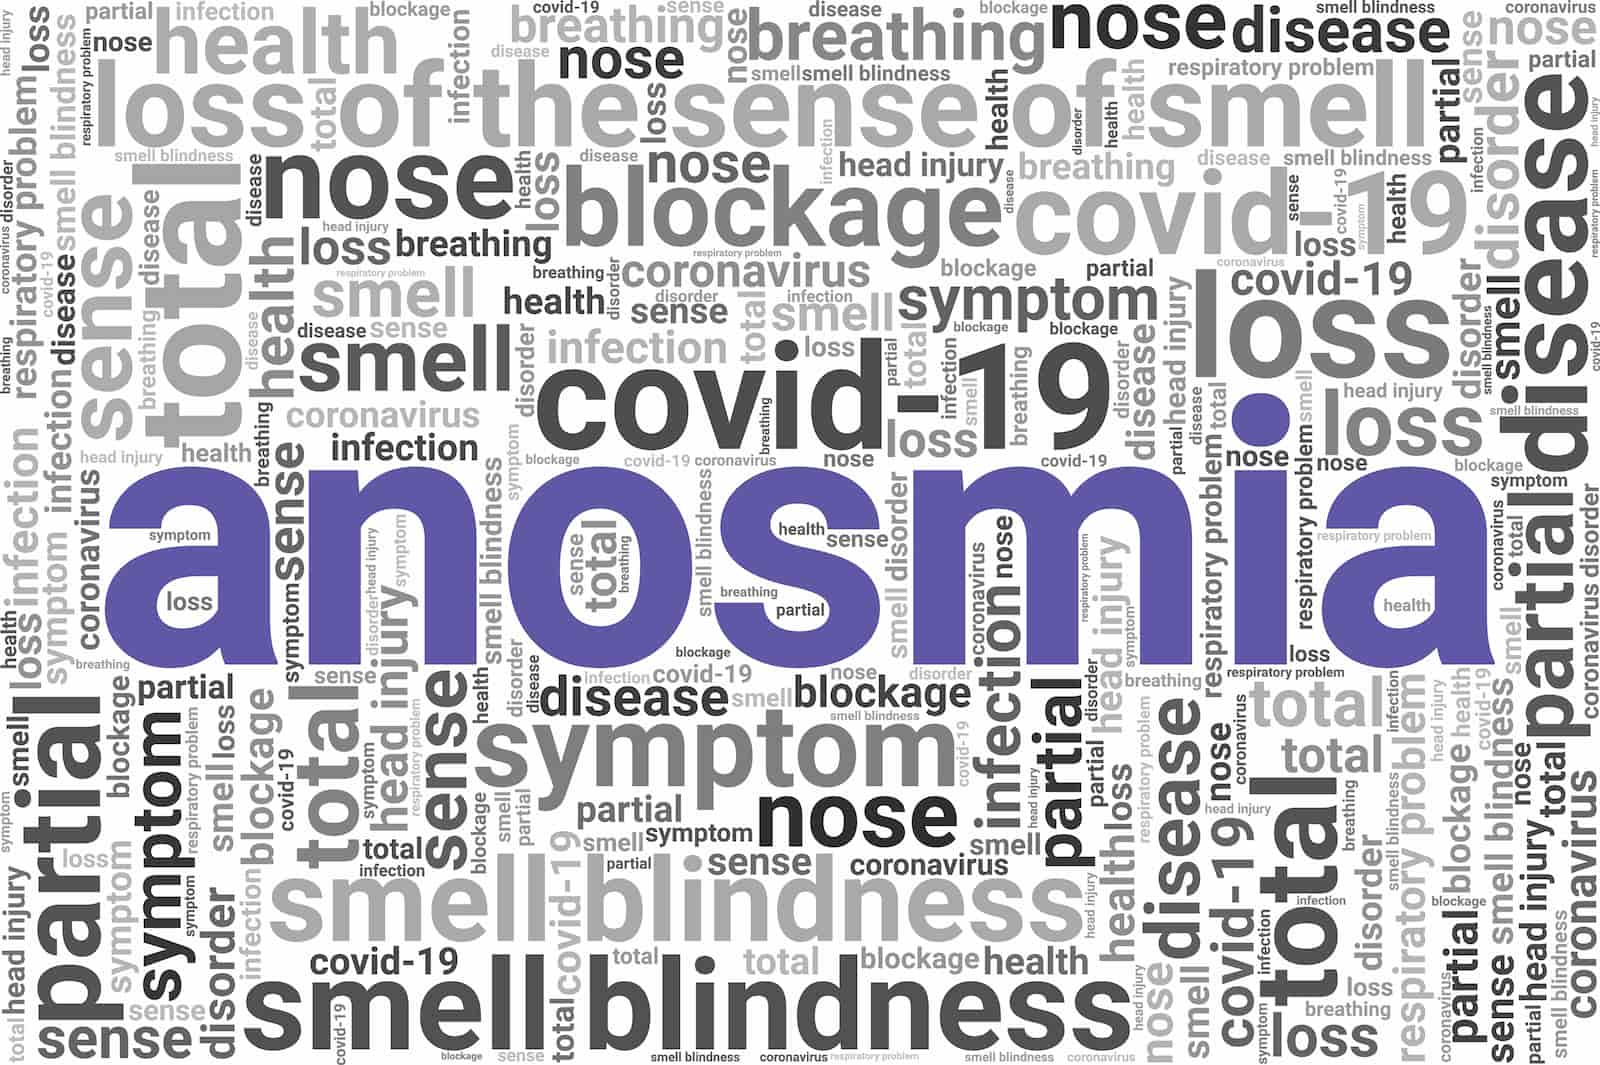 anosmia loss of smell covid19 (1)